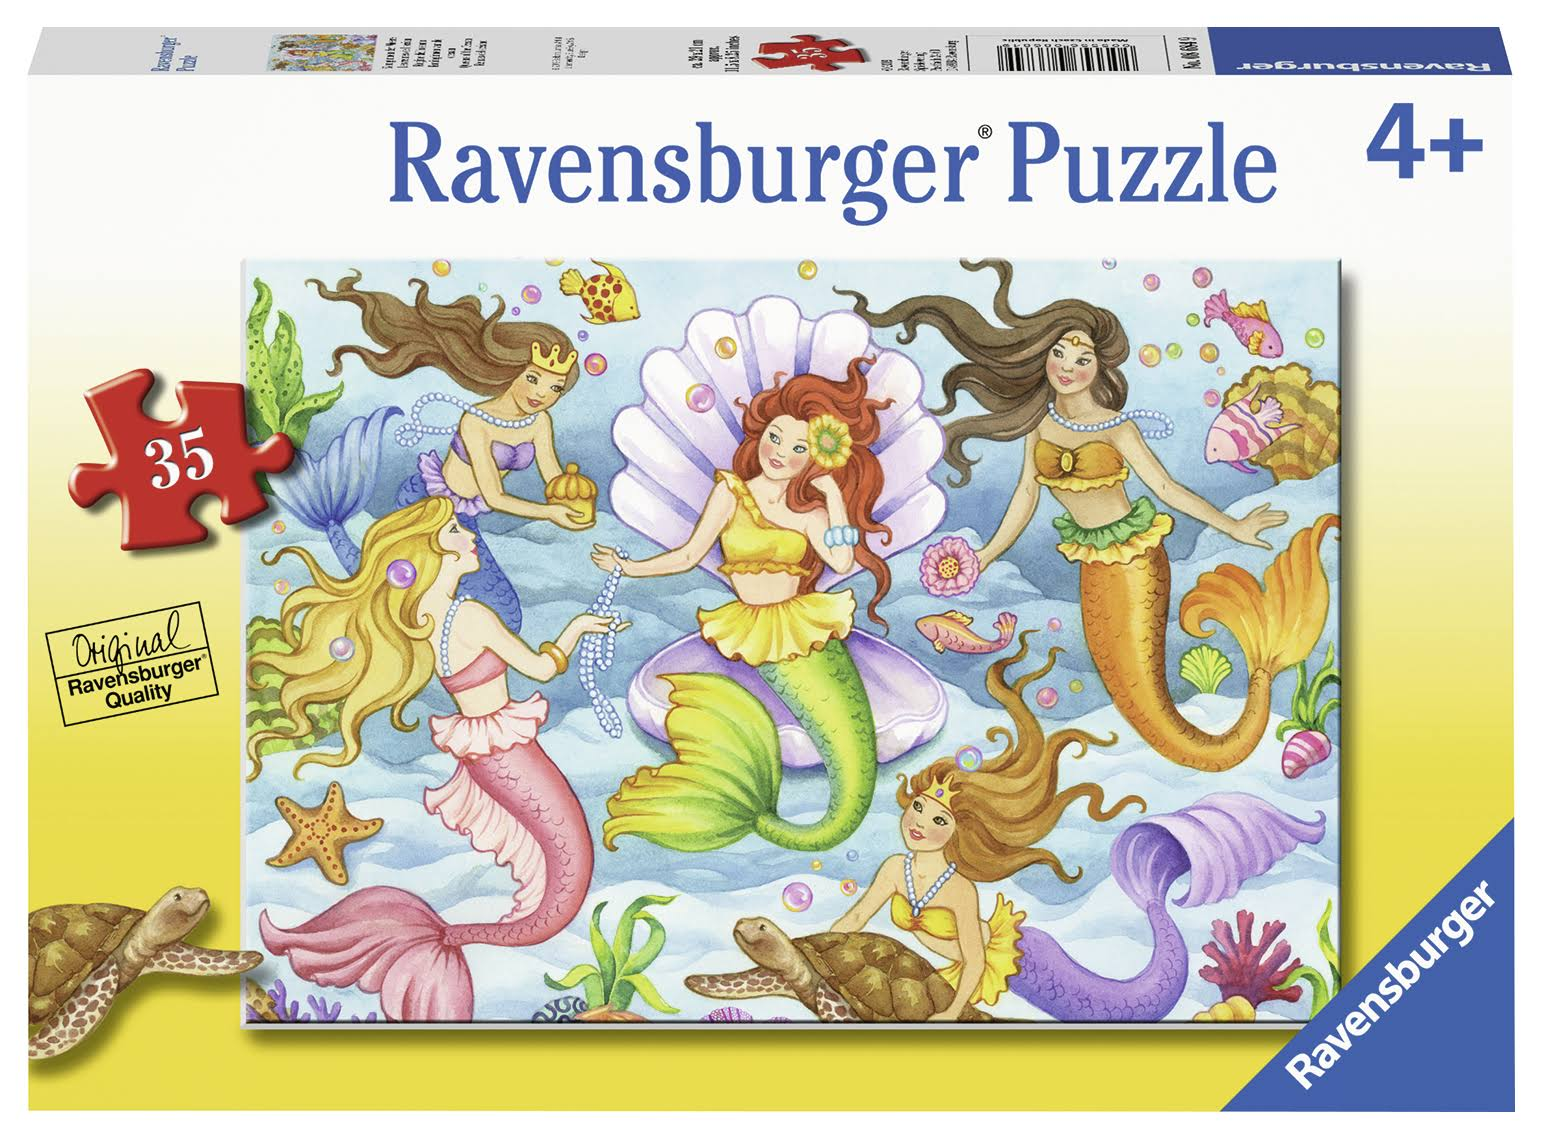 Ravensburger Queens of the Ocean Jigsaw Puzzle - 35pcs